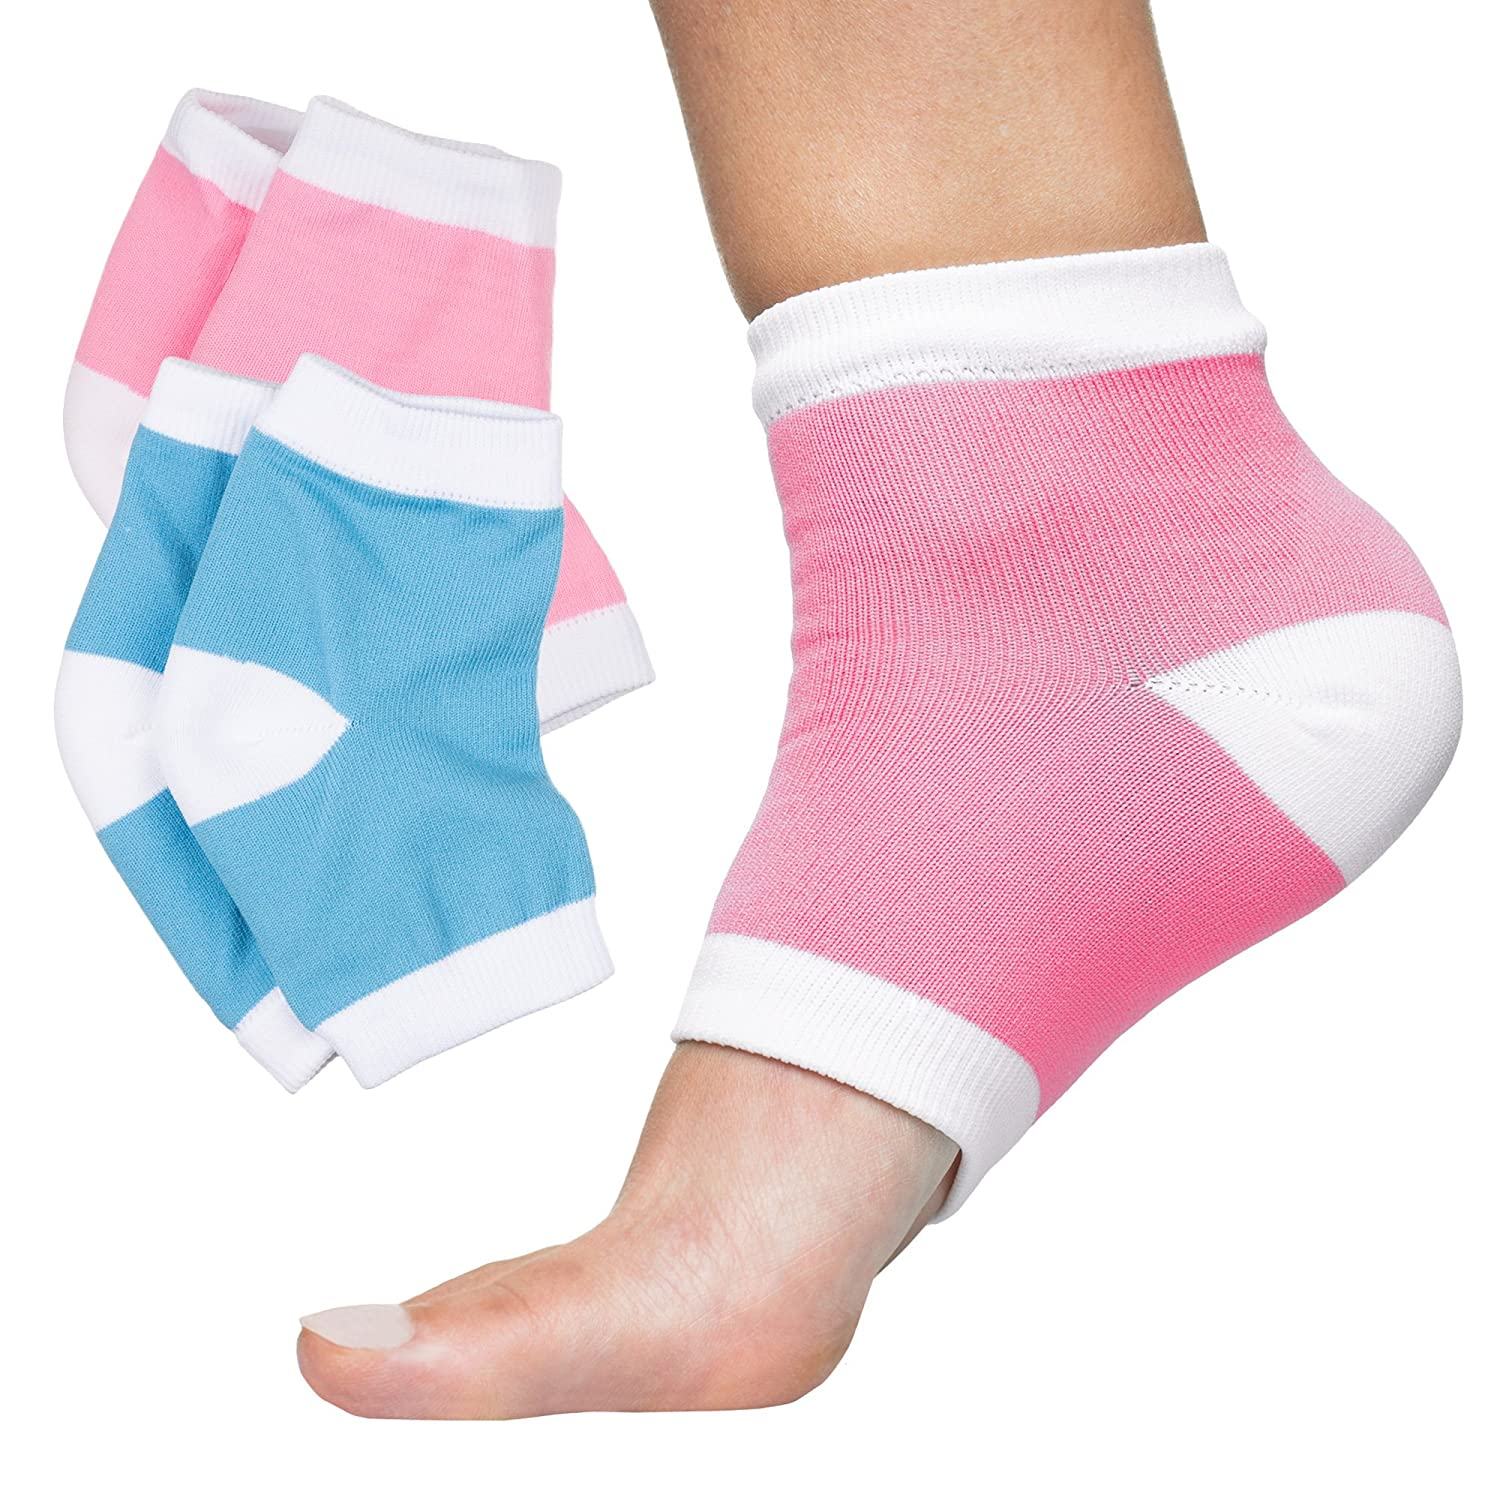 ZenToes Moisturizing Heel Socks 2 Pairs Gel Lined Toeless Spa Socks to Heal and Treat Dry, Cracked Heels While You Sleep (Cotton, Blue and Pink)